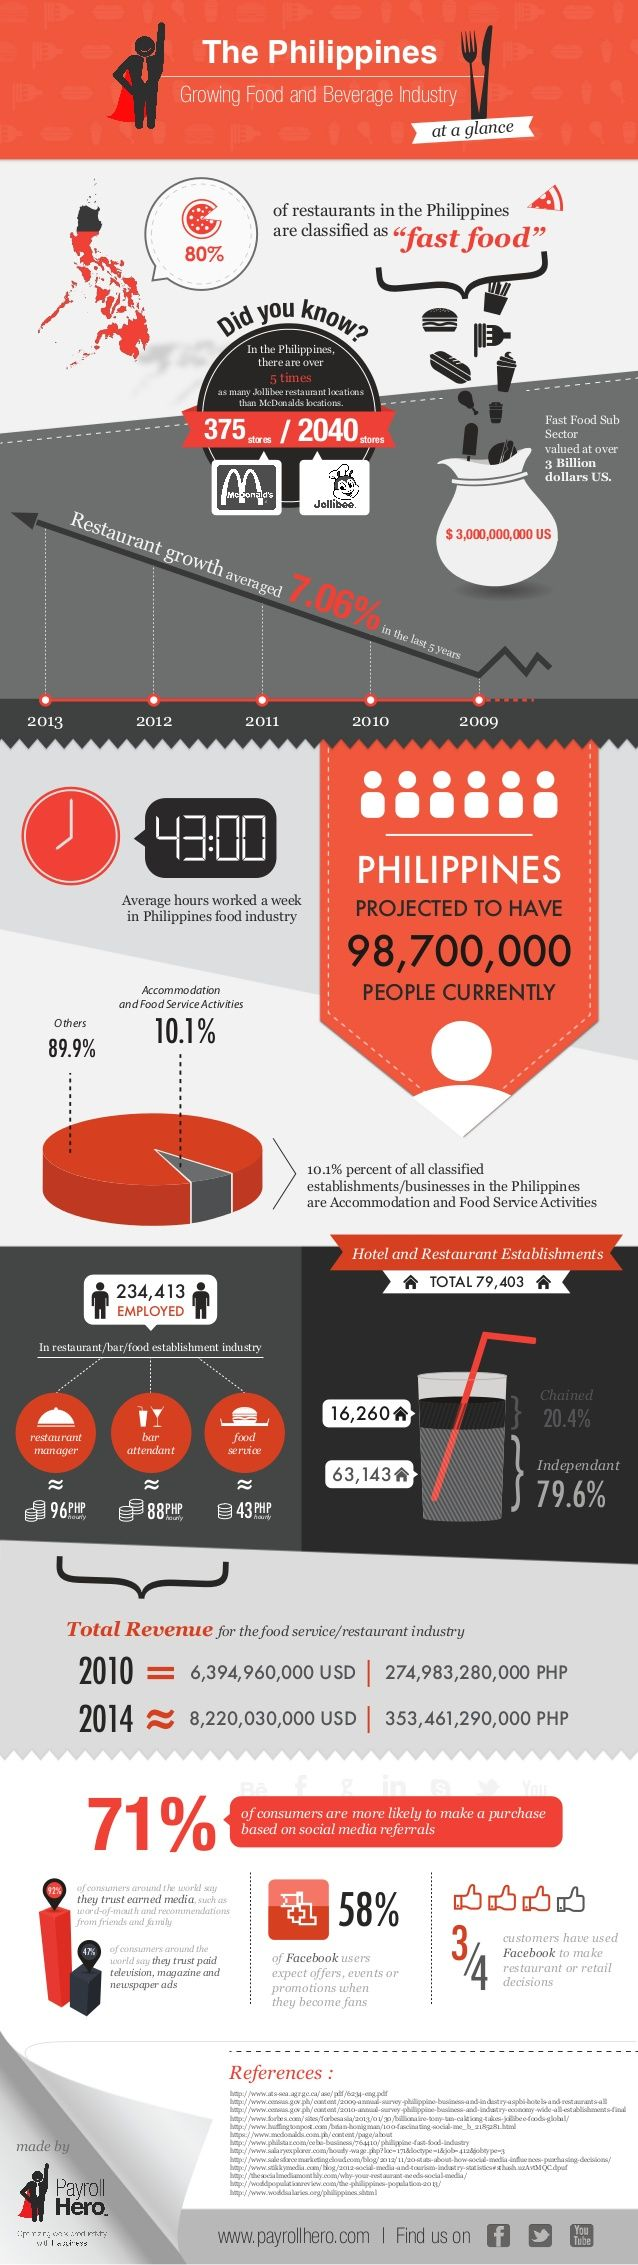 Philippines Food and Beverage Industry Infographic (by www.PayrollHero.com)